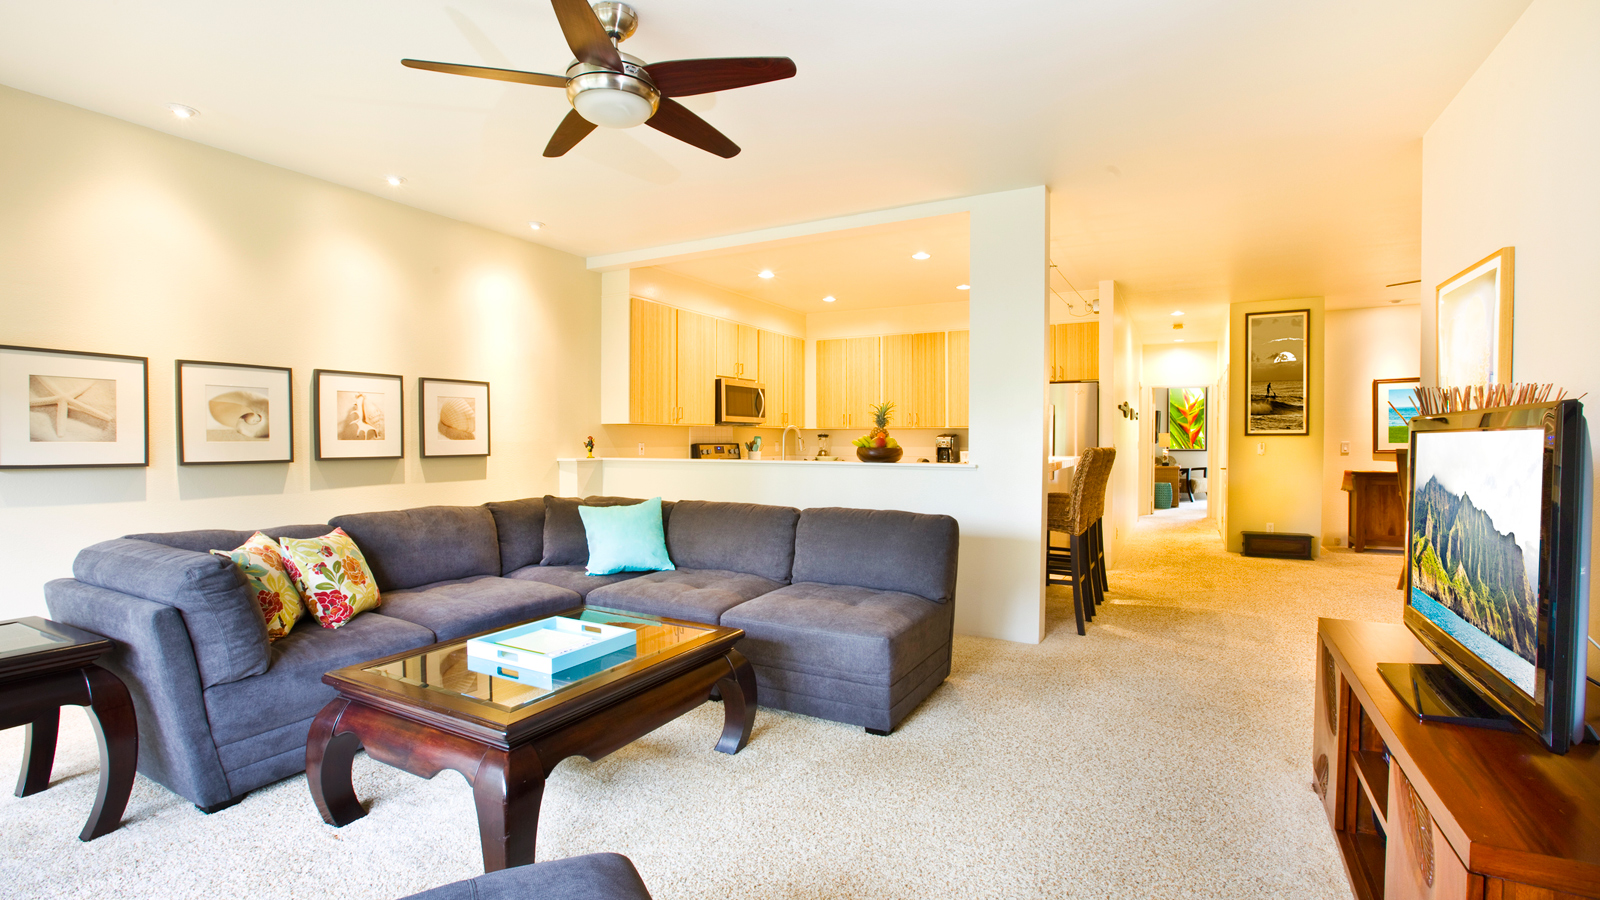 7 steps to buying a hawaii home for first time buyers hawaii